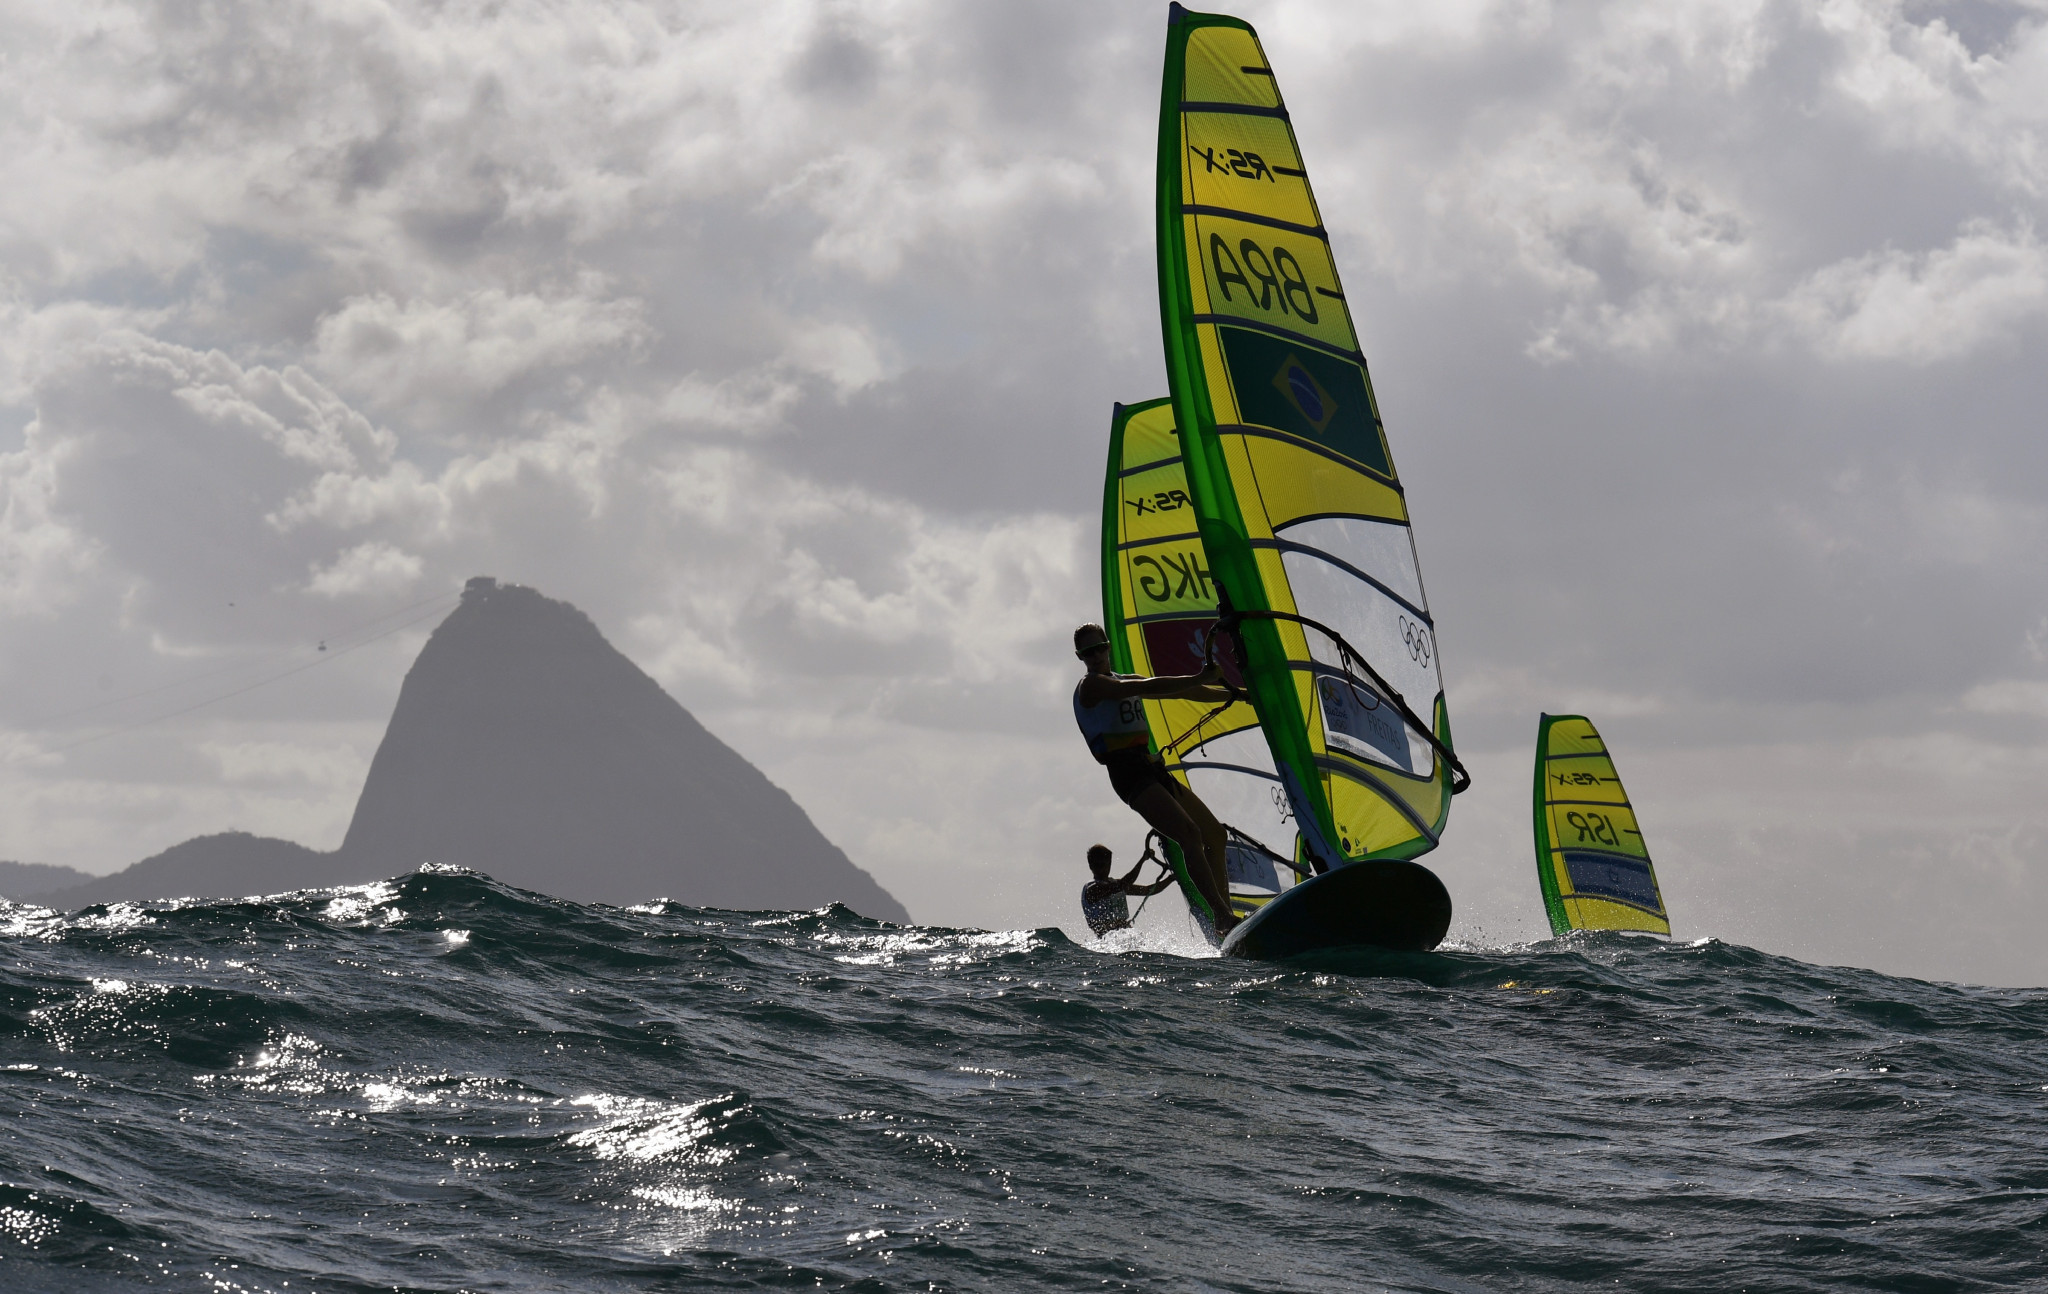 Concerns over RS:X windsurfing World Championships on Tokyo 2020 course intensify as cyclone hits Japan